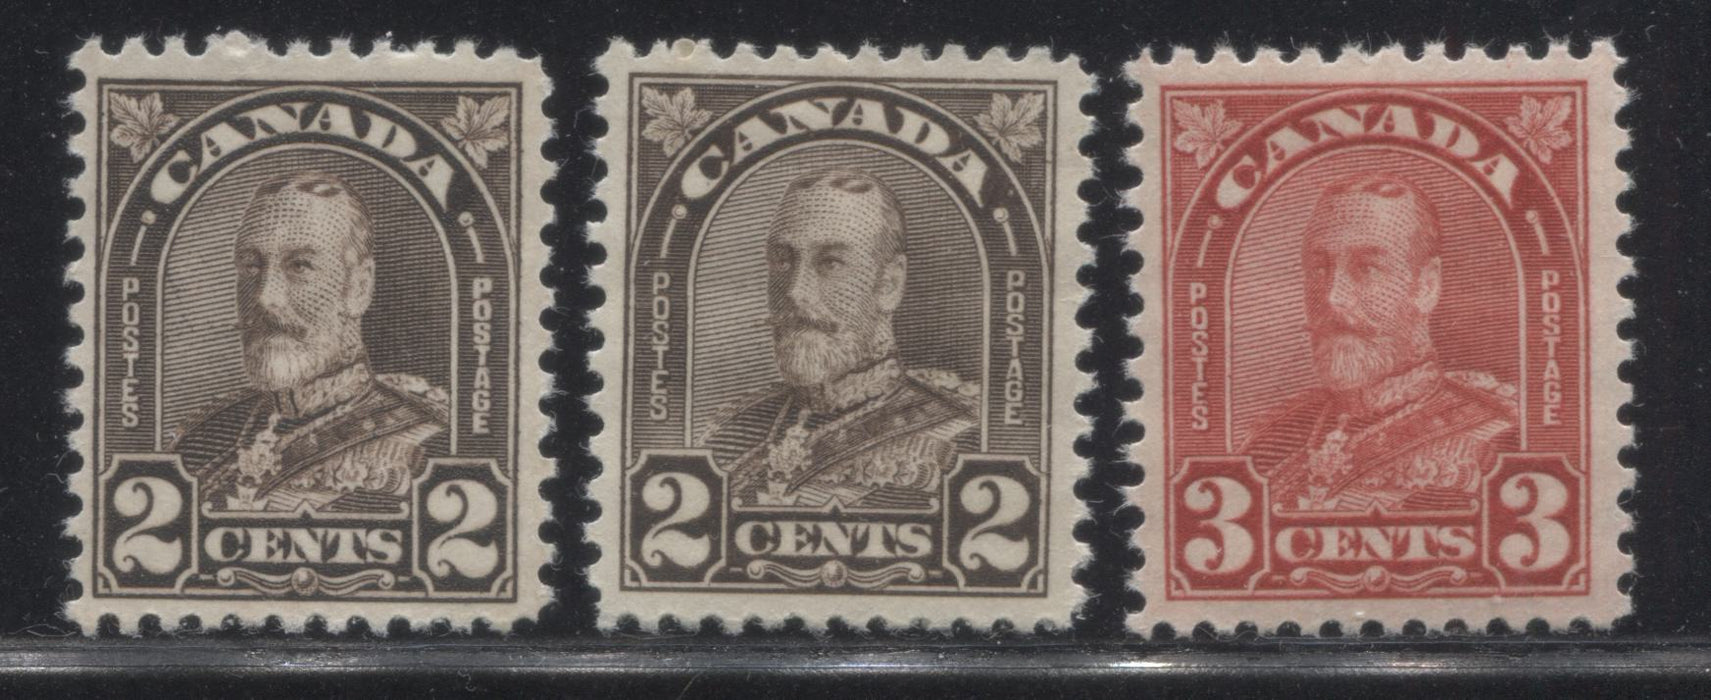 Canada #166-167 2c Blackish Brown & 3c Scarlet King George V, 1930-1935 Arch Issue, Three Very Fine Mint Singles, Including Both Dies of the 2c Blackish Brown Brixton Chrome